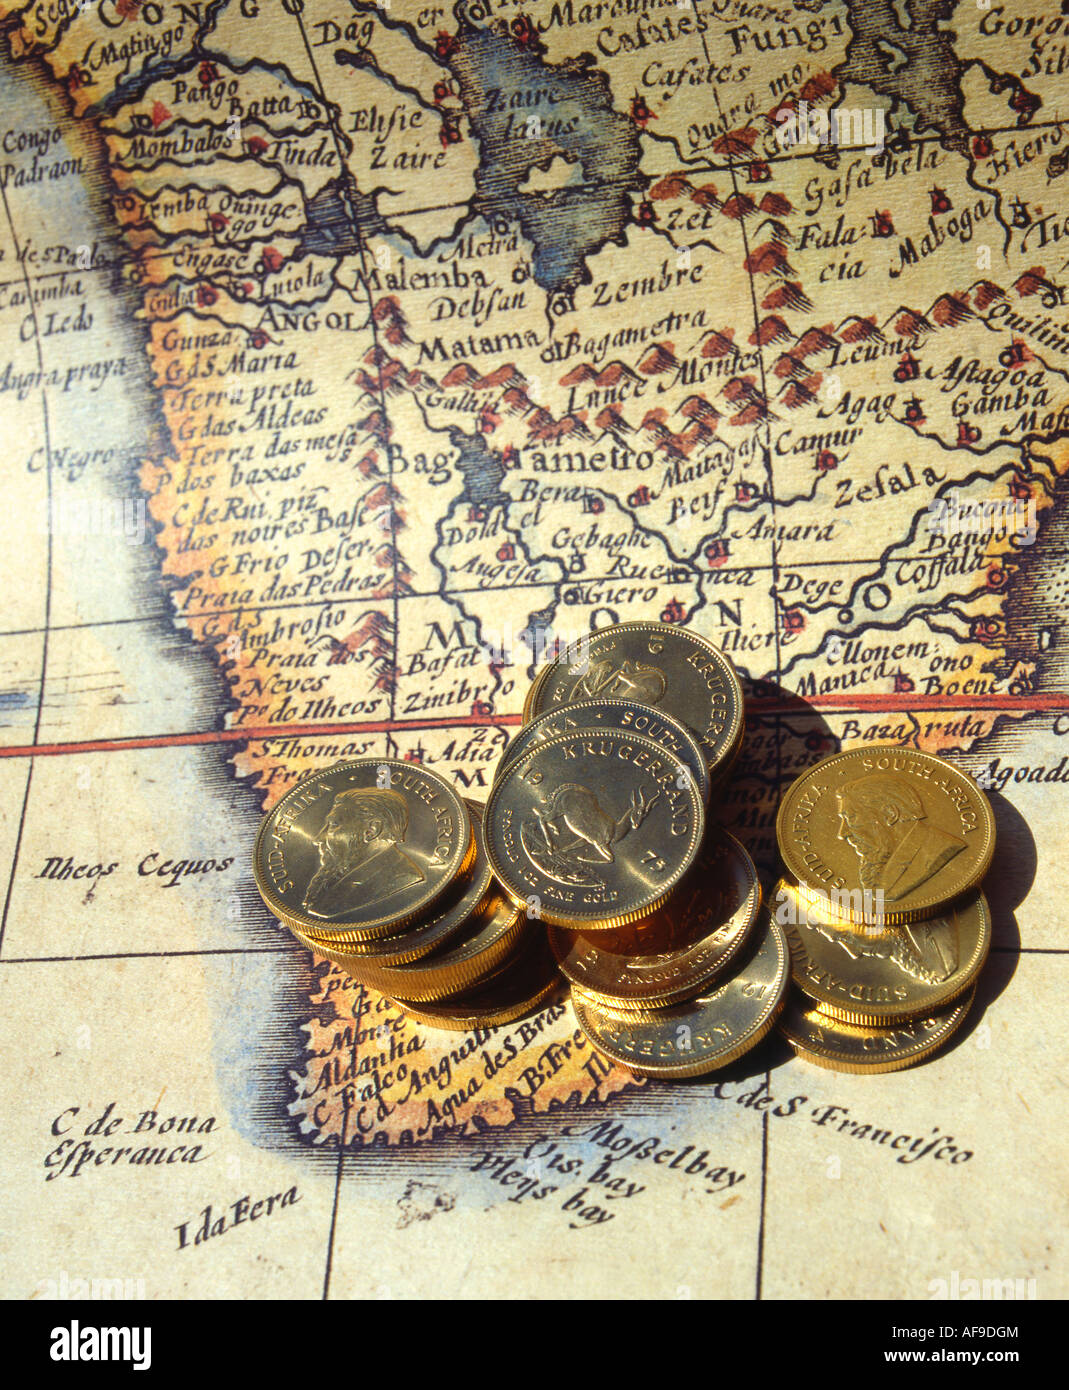 Kruger rand stock photos kruger rand stock images alamy gold kruger rand coins lying on an old map of south africa south africa stock buycottarizona